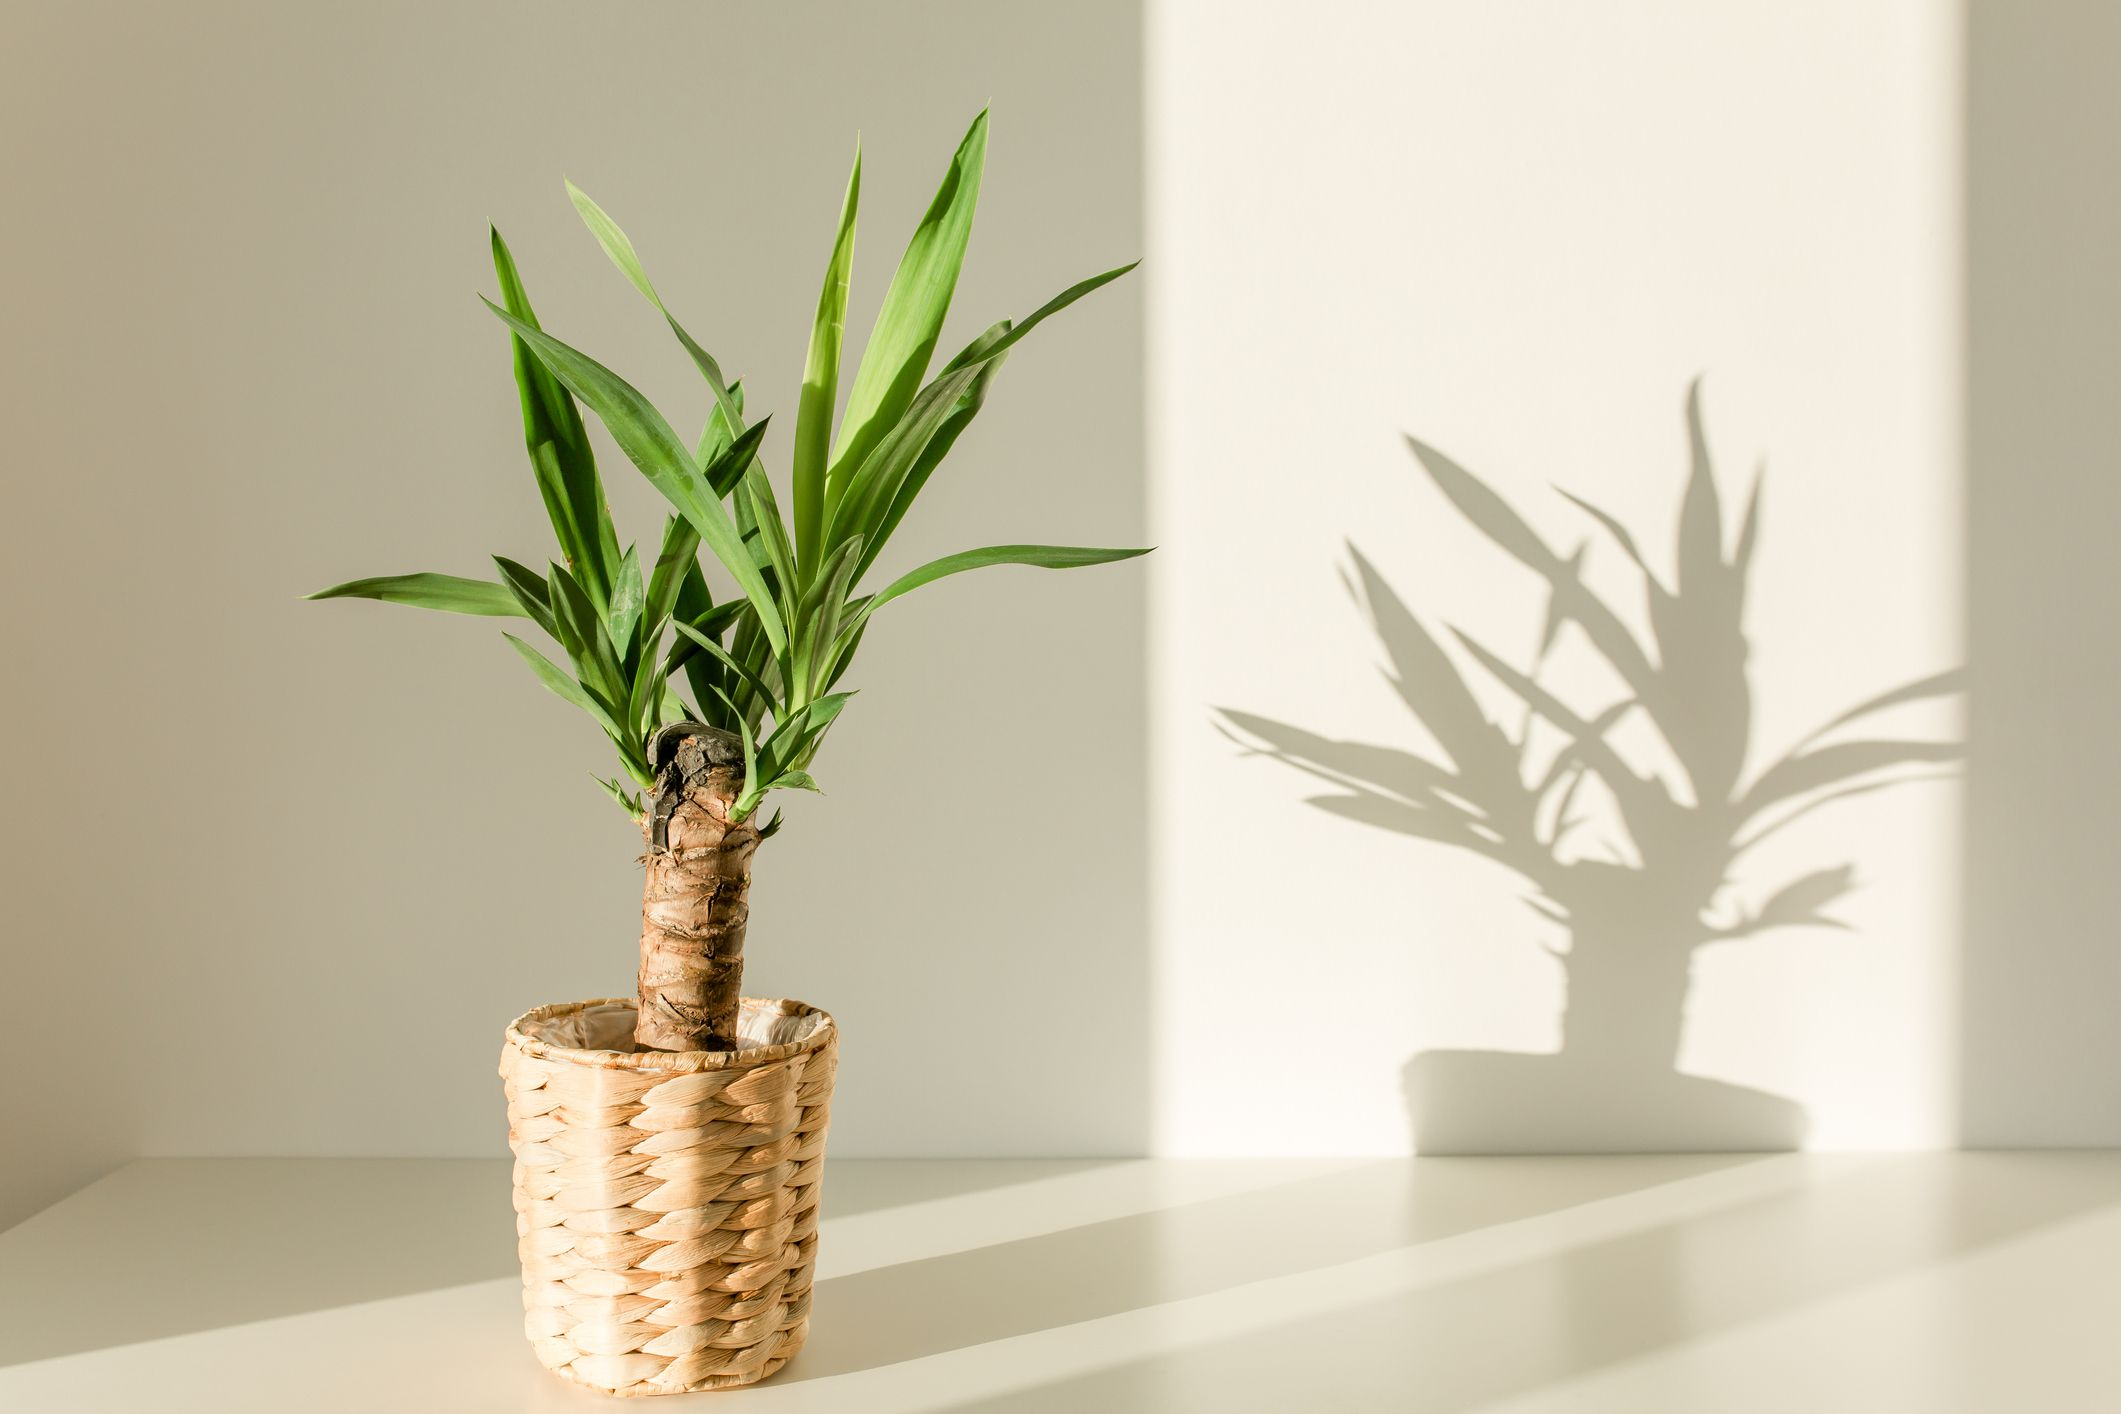 Small potted yucca plant in sunlight